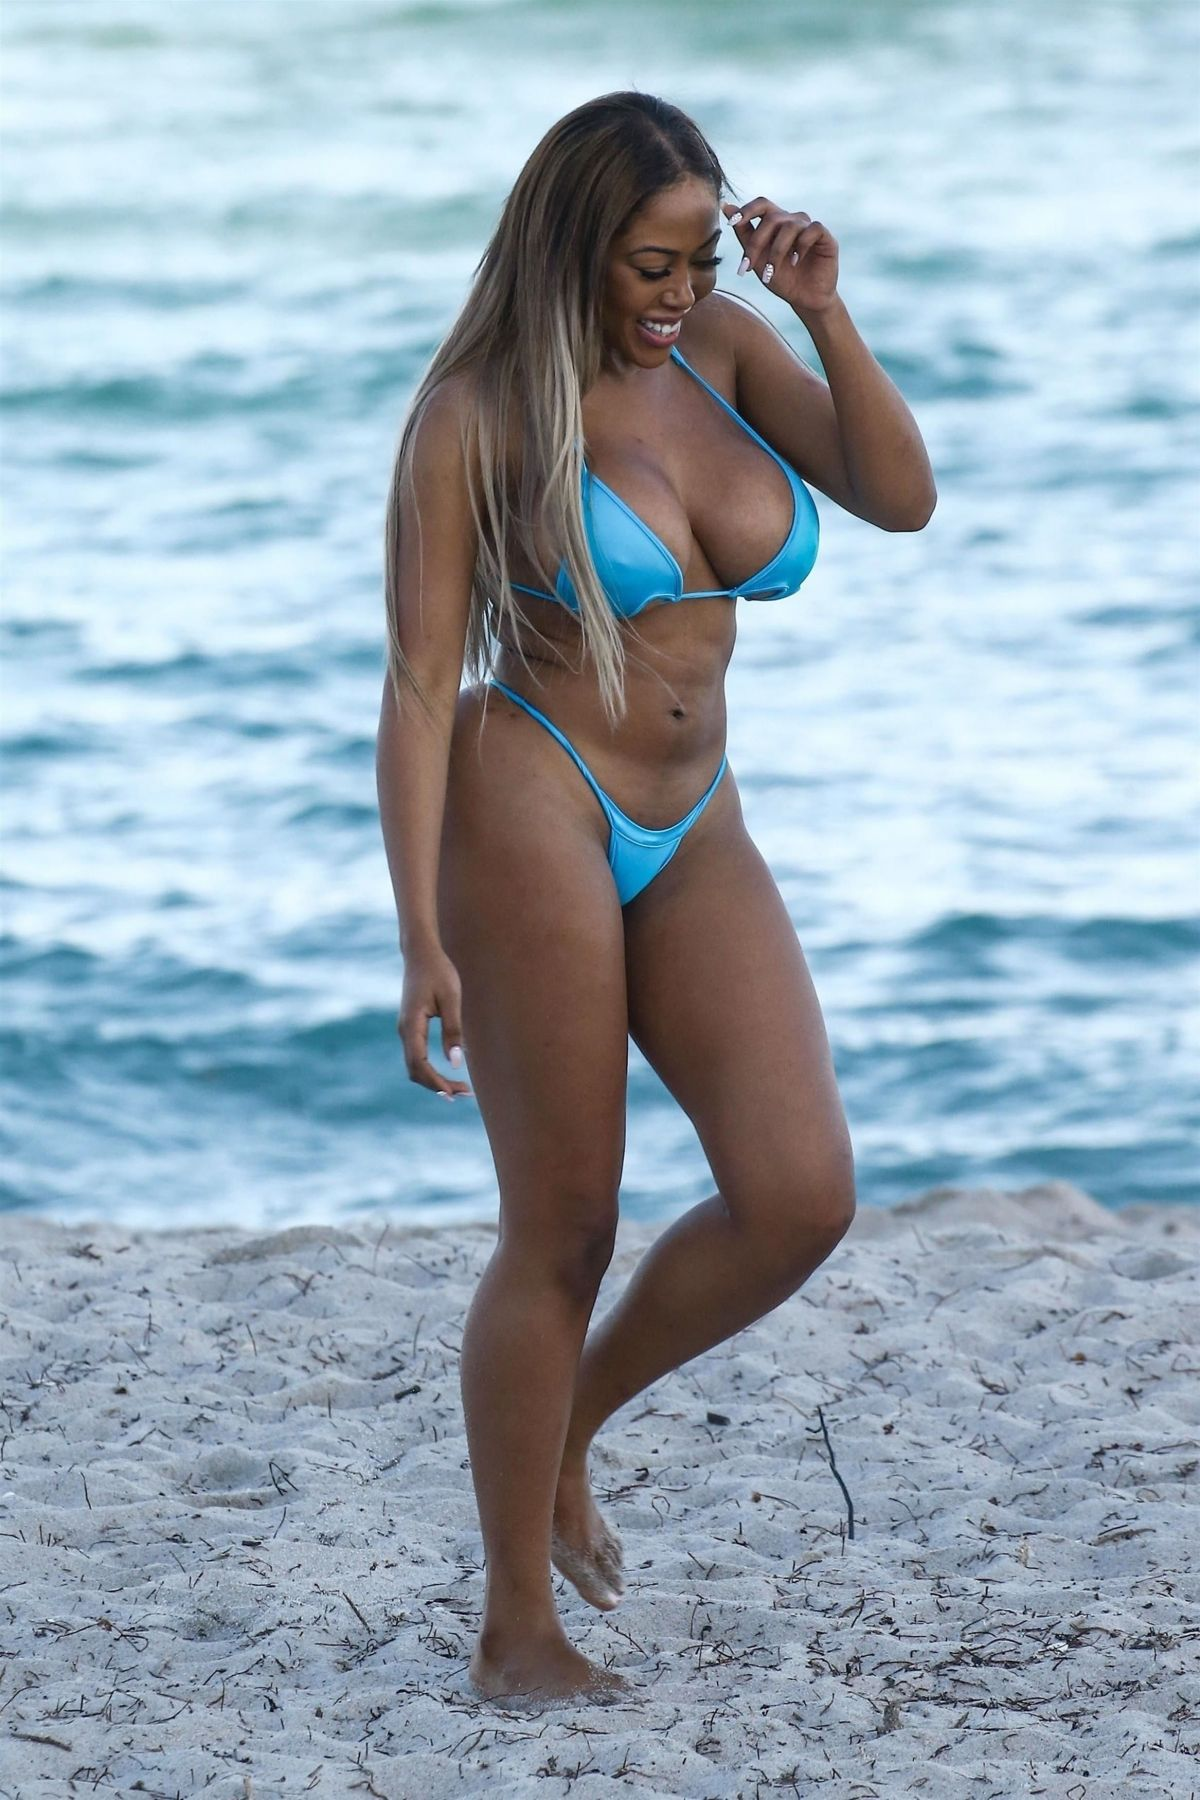 Moriah Mills in Bikini Photoshoot on the beach in Miami Pic 3 of 35